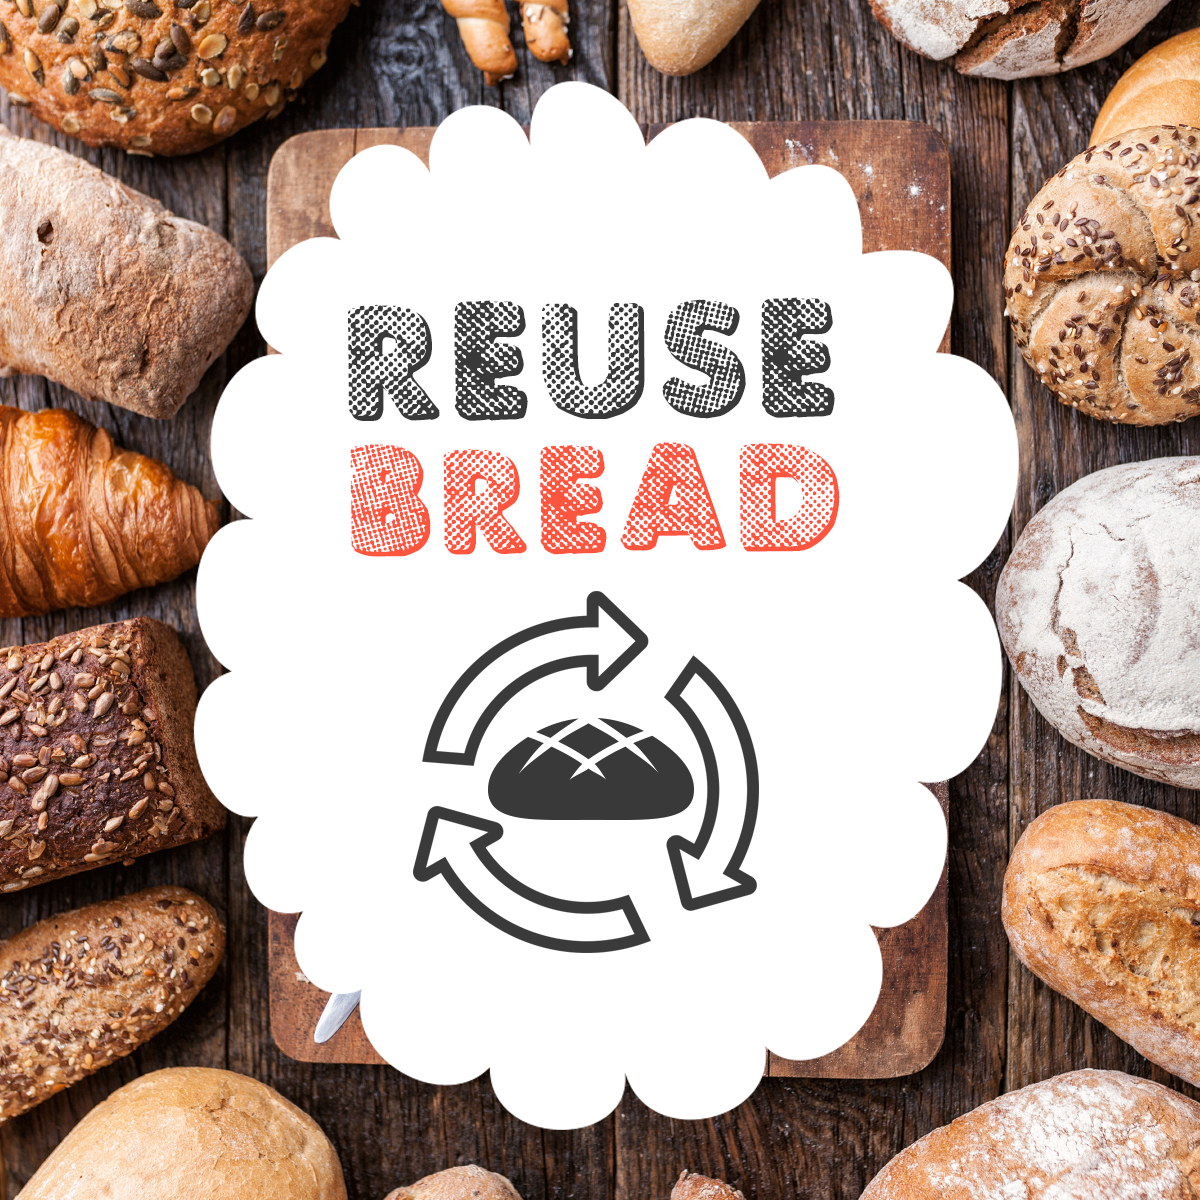 REUSE BREAD